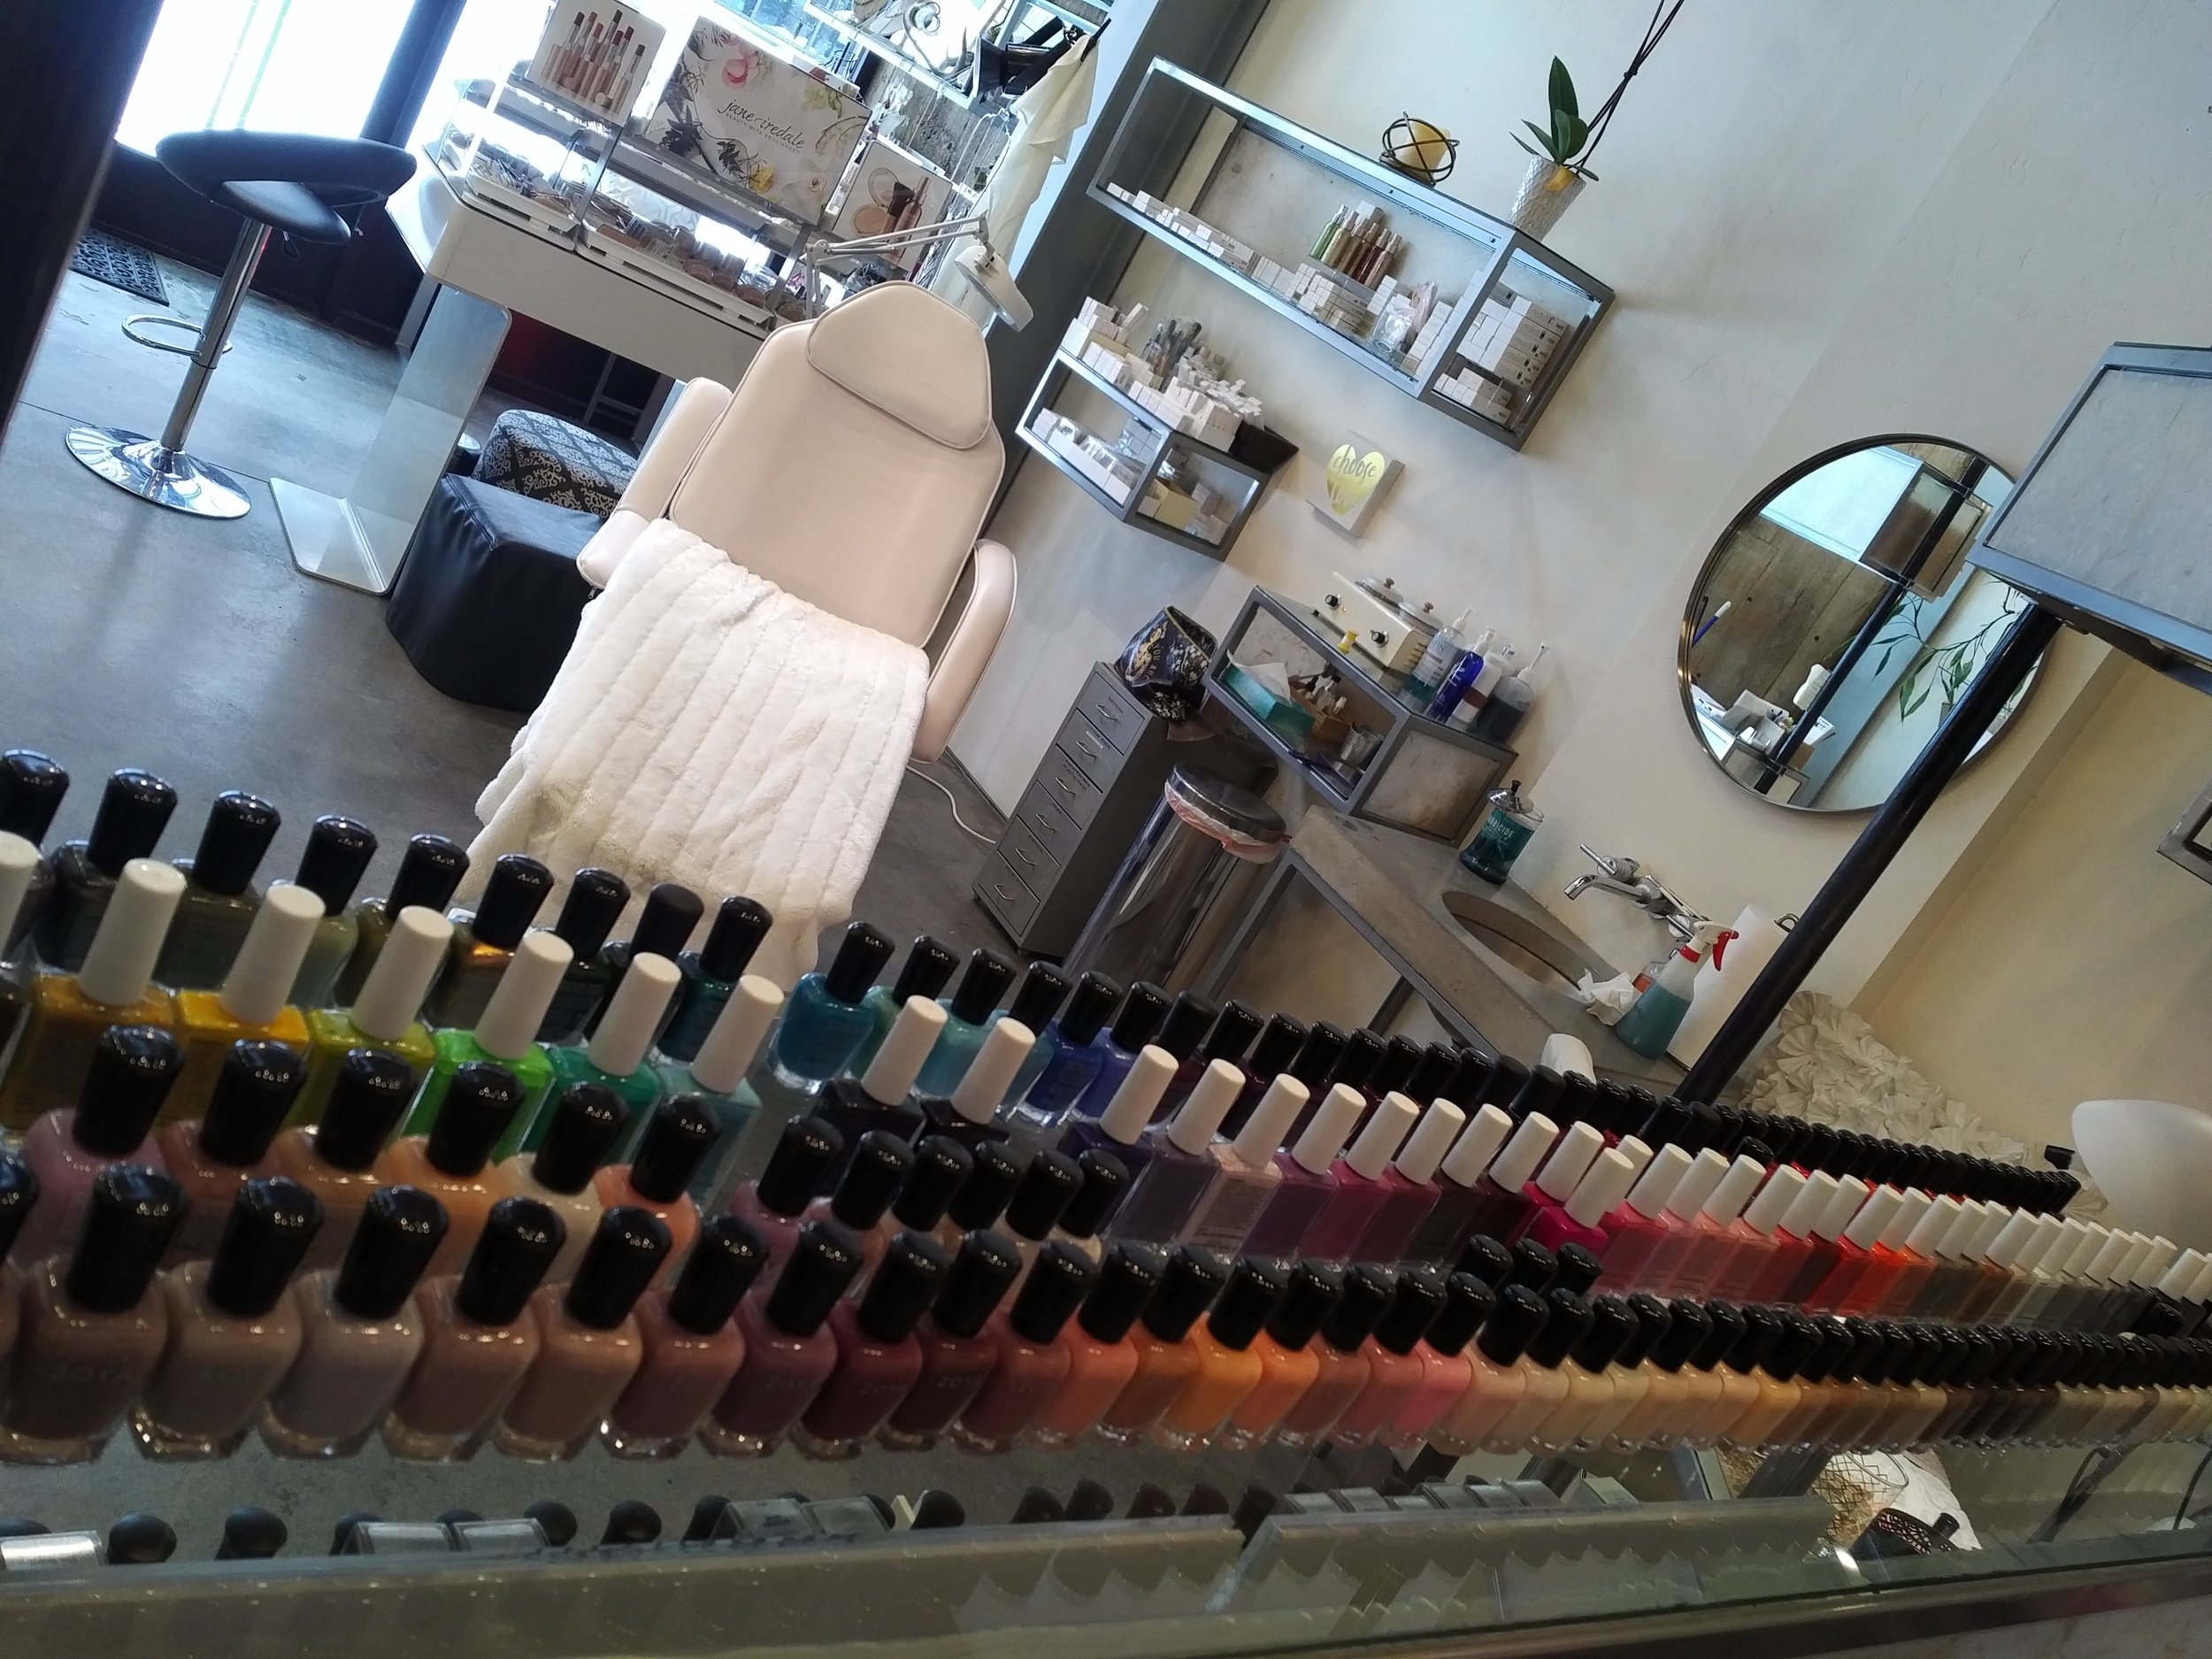 Best of, Best Colors in Bend, Oregon, Most Color Selection, Best Color Selection, Deborah Lippmann, Zoya, Bio Sculpture Gel, Bio Nails, BioSculpture, Dazzle Dry, OCC, Butter London, Natural Nails, 10 Free Nails, 5 Free Nails, 7 Free Nails, Best Mani in Bend Oregon, Best Mani, Voted Best Mani, Best Mani/Pedi, Best Mani Pedi, Best Nails in Bend, Oregon, Bulletin, Best Facials in Bend, Best Day Spa, Best Threading, Best Waxing, Best Makeup, Best Tanning, Bend Oregon, Voted Best